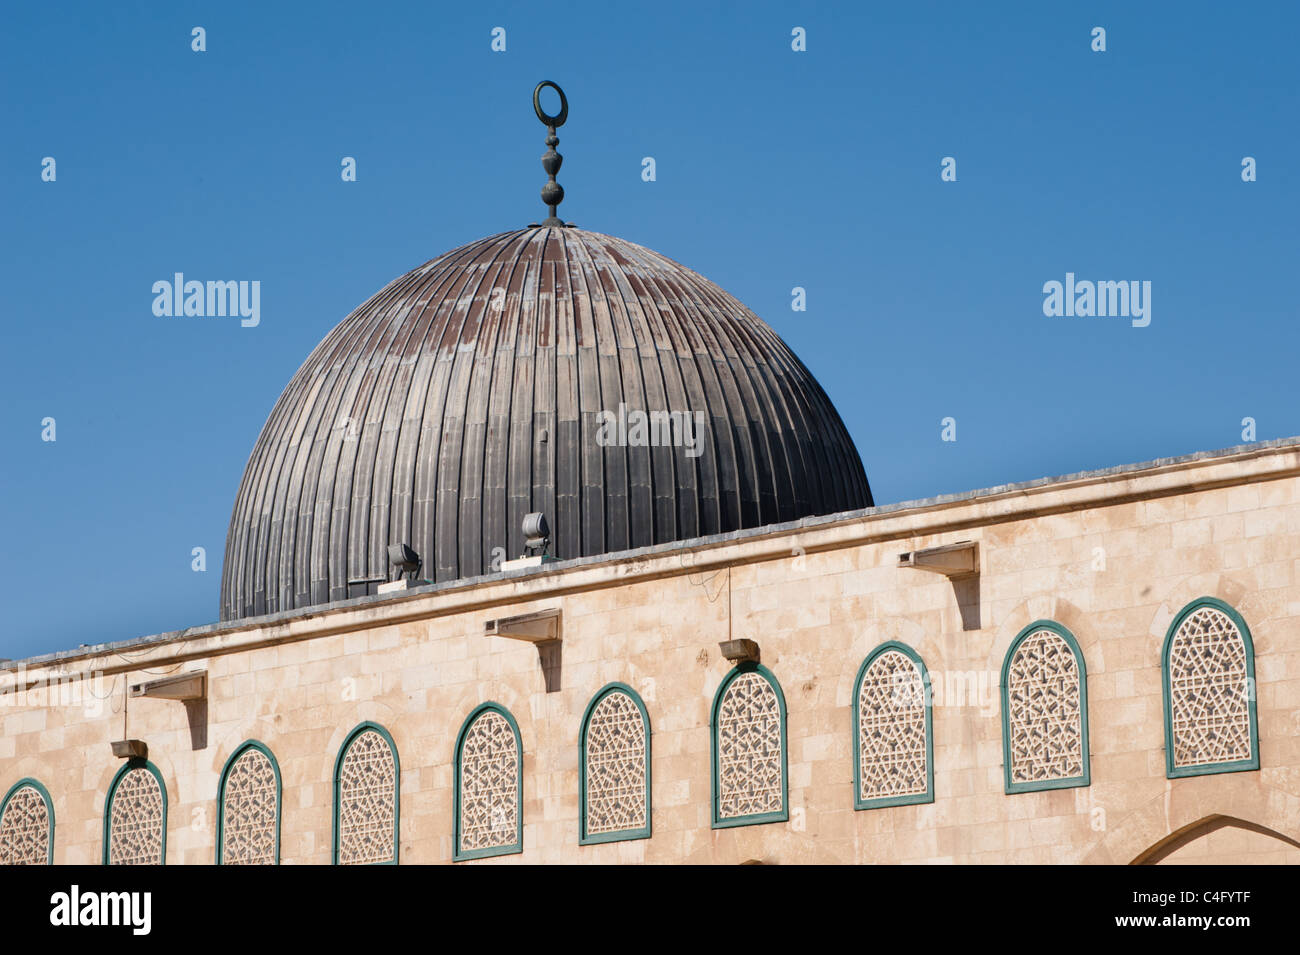 The dome of the Al-Aqsa Mosque on the Haram al-Sharif, also known as the Temple Mount, in the Old City of Jerusalem. - Stock Image